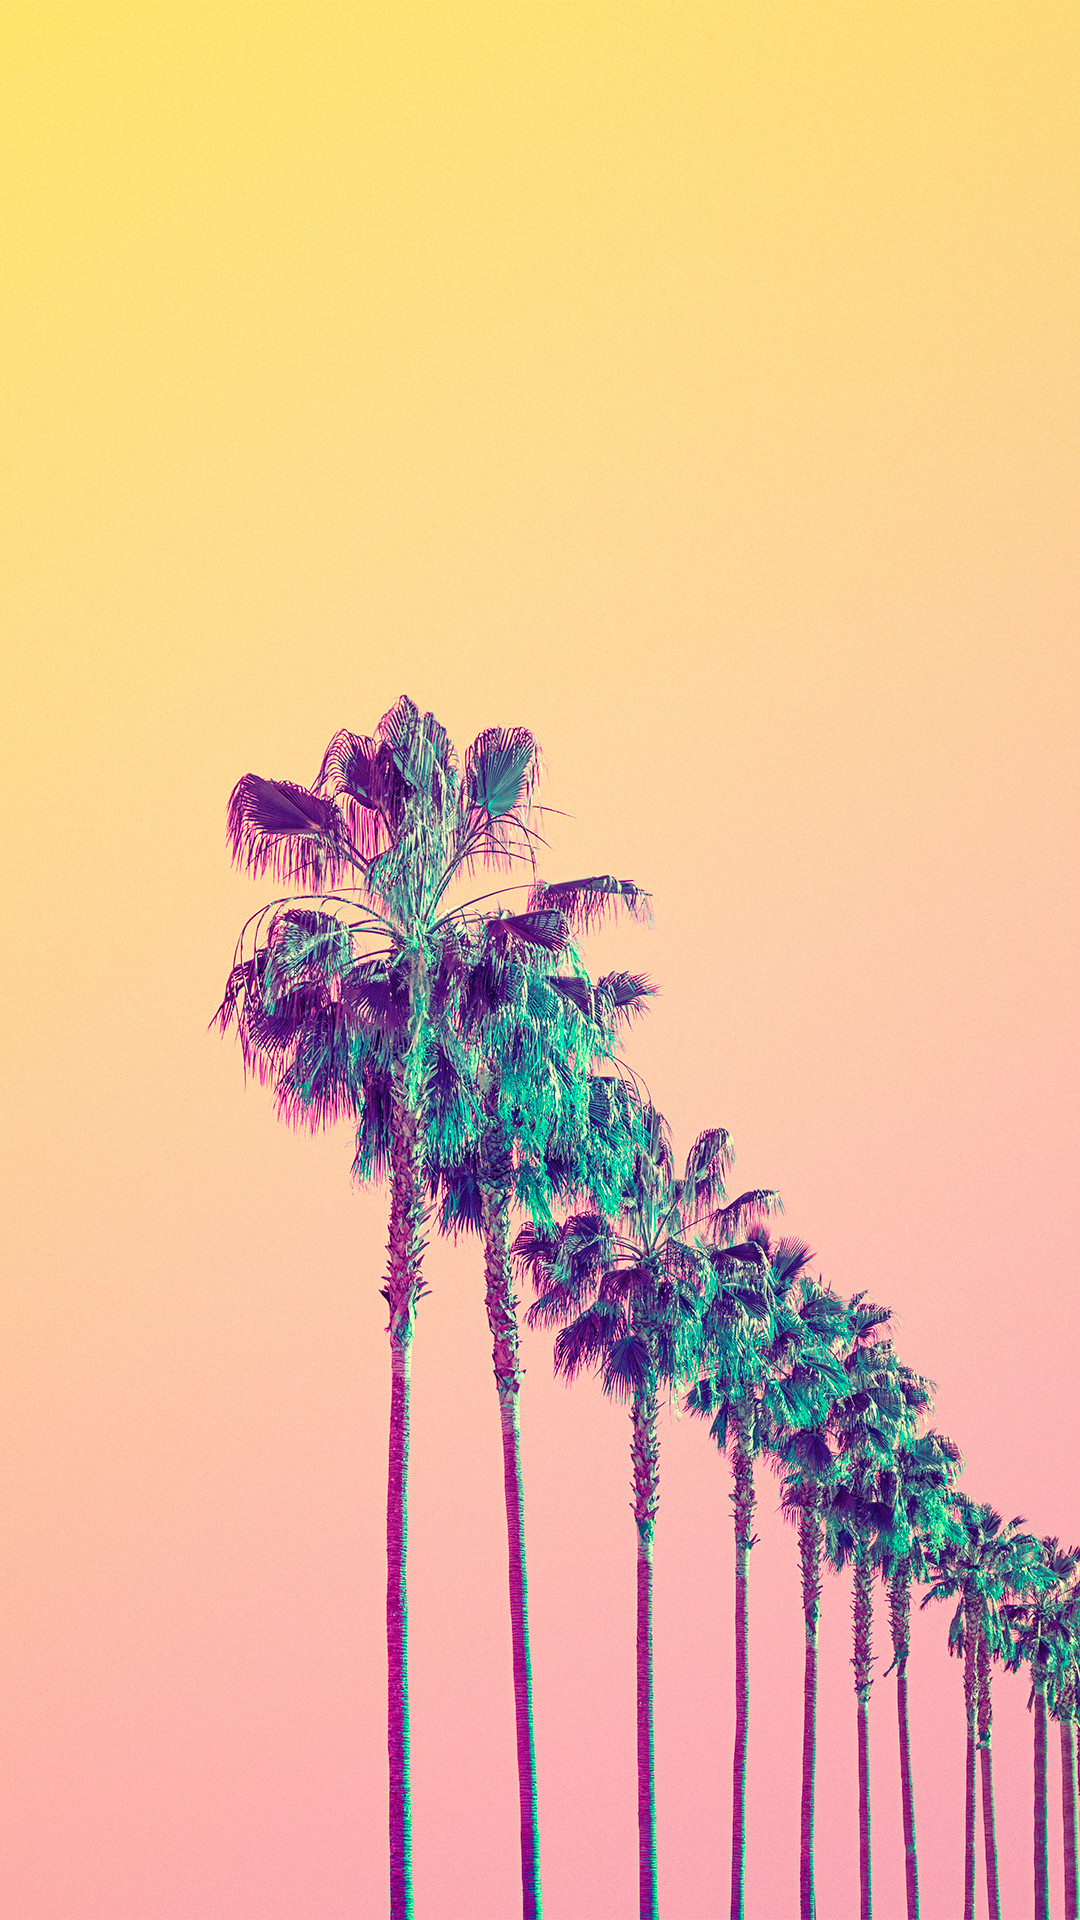 Aesthetic Wallpapers (78+ images)